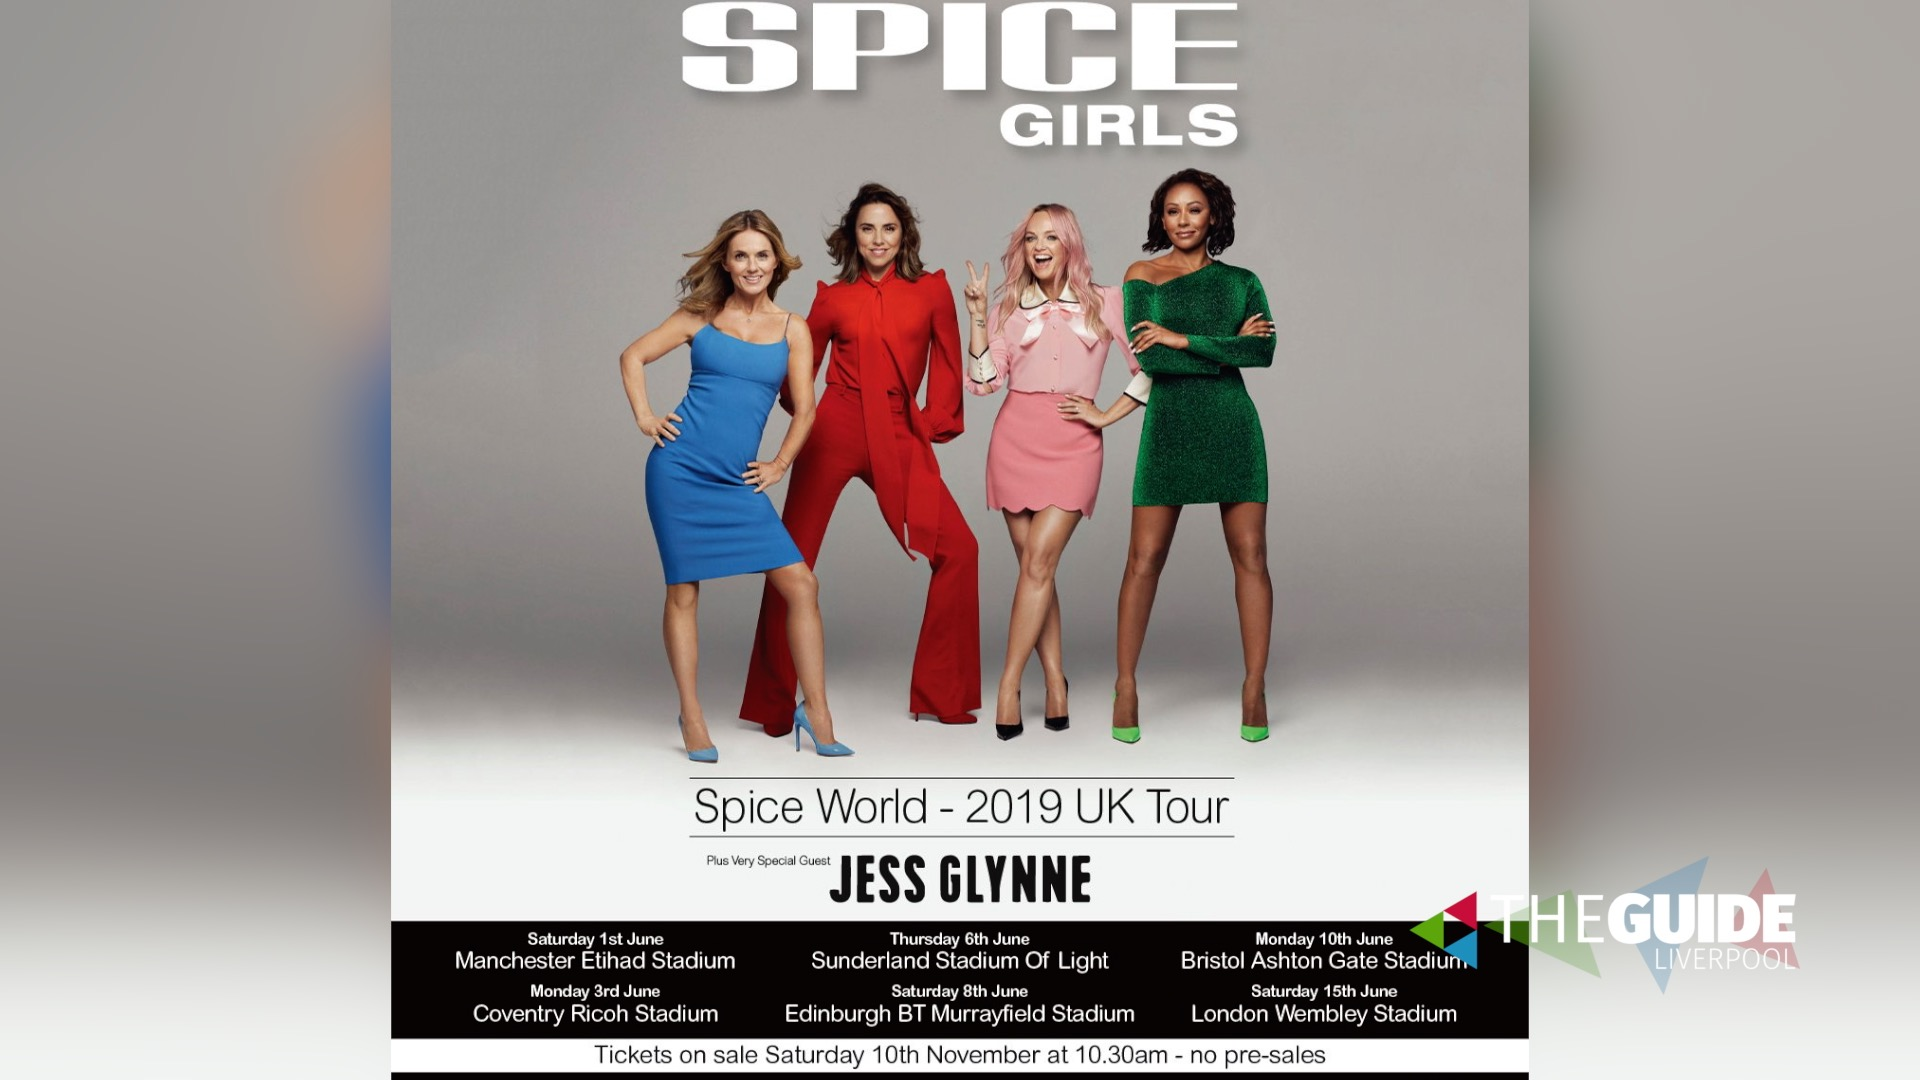 Spice Girls Murrayfield Saturday 8th June 2019